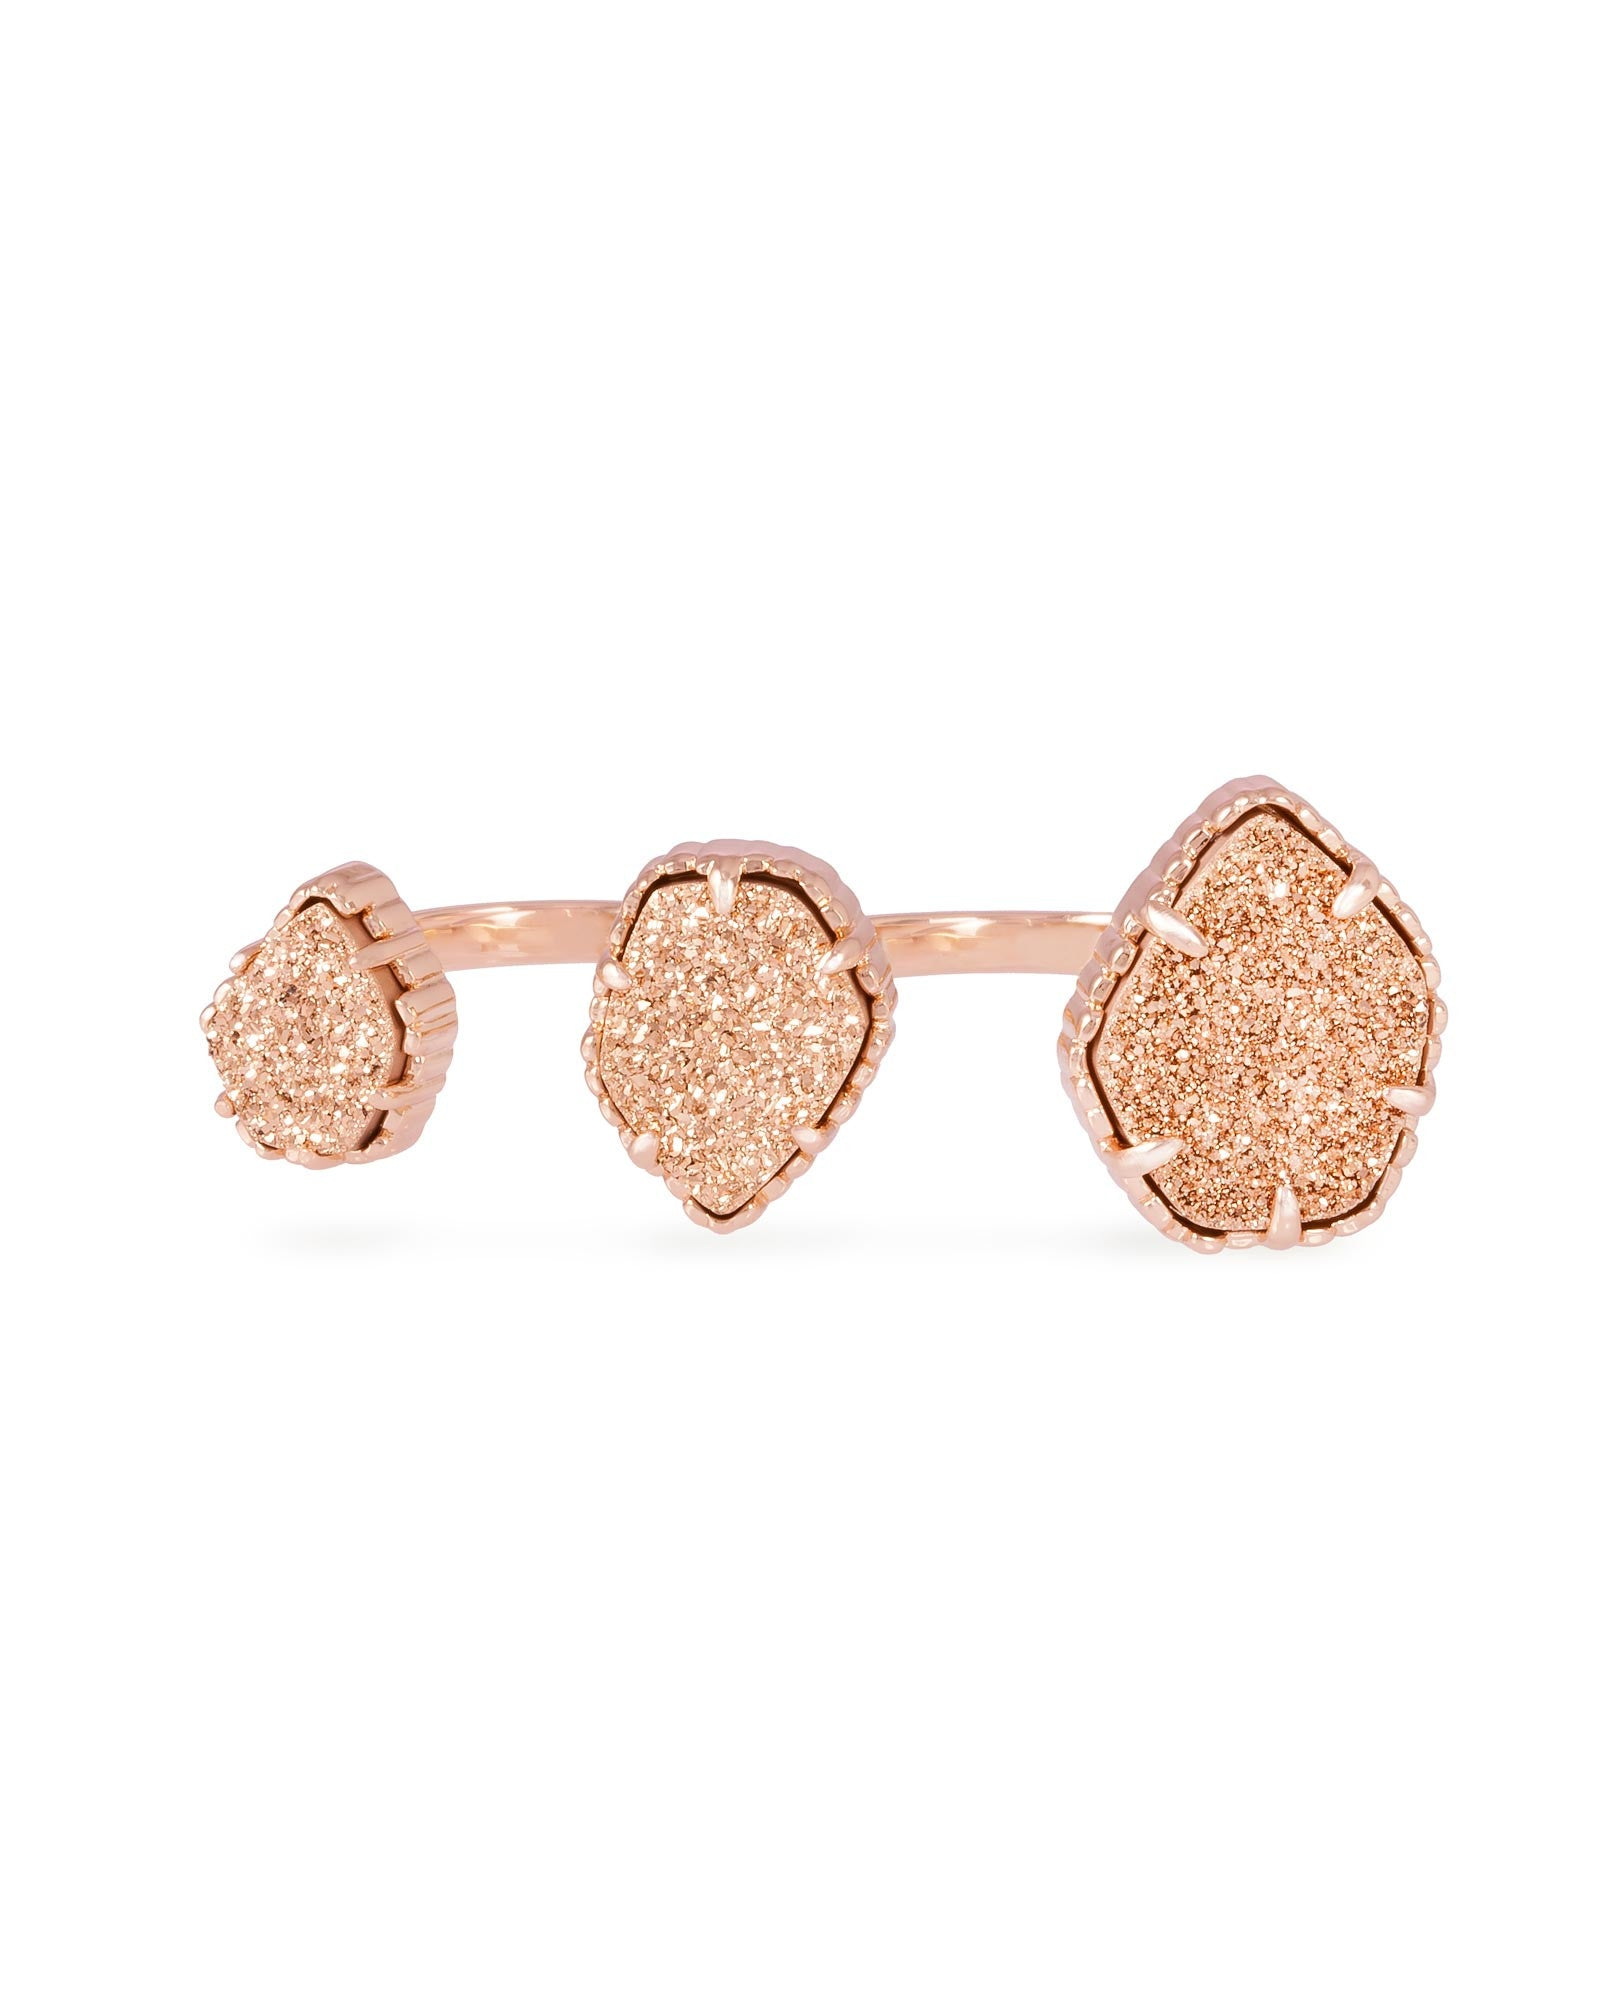 Rose Gold Plated Plated with Orange Druzy Stone Knuckle Ring